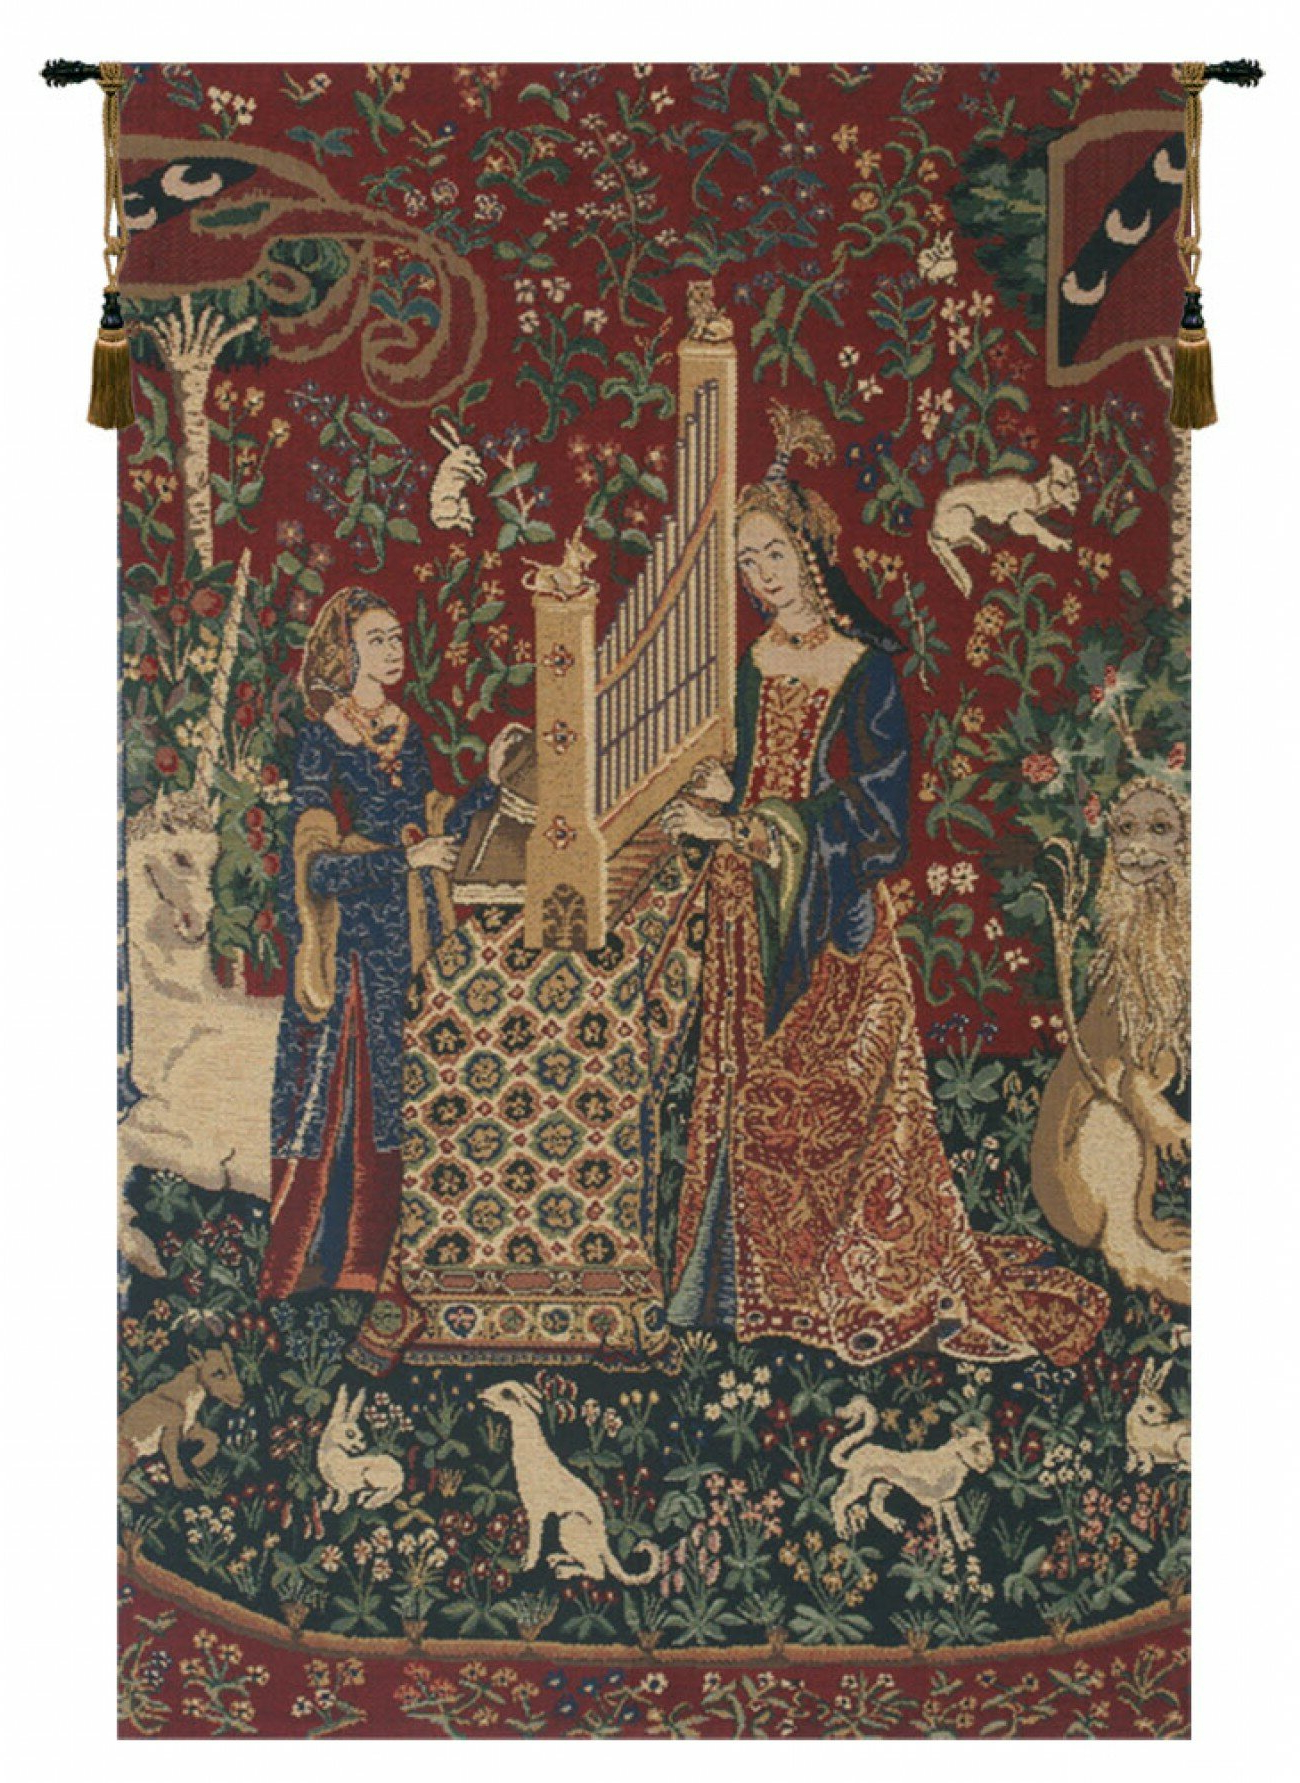 Latest Blended Fabric Mucha Spring European Wall Hangings Within Lady And The Organ Iii Wall Hanging (View 16 of 20)